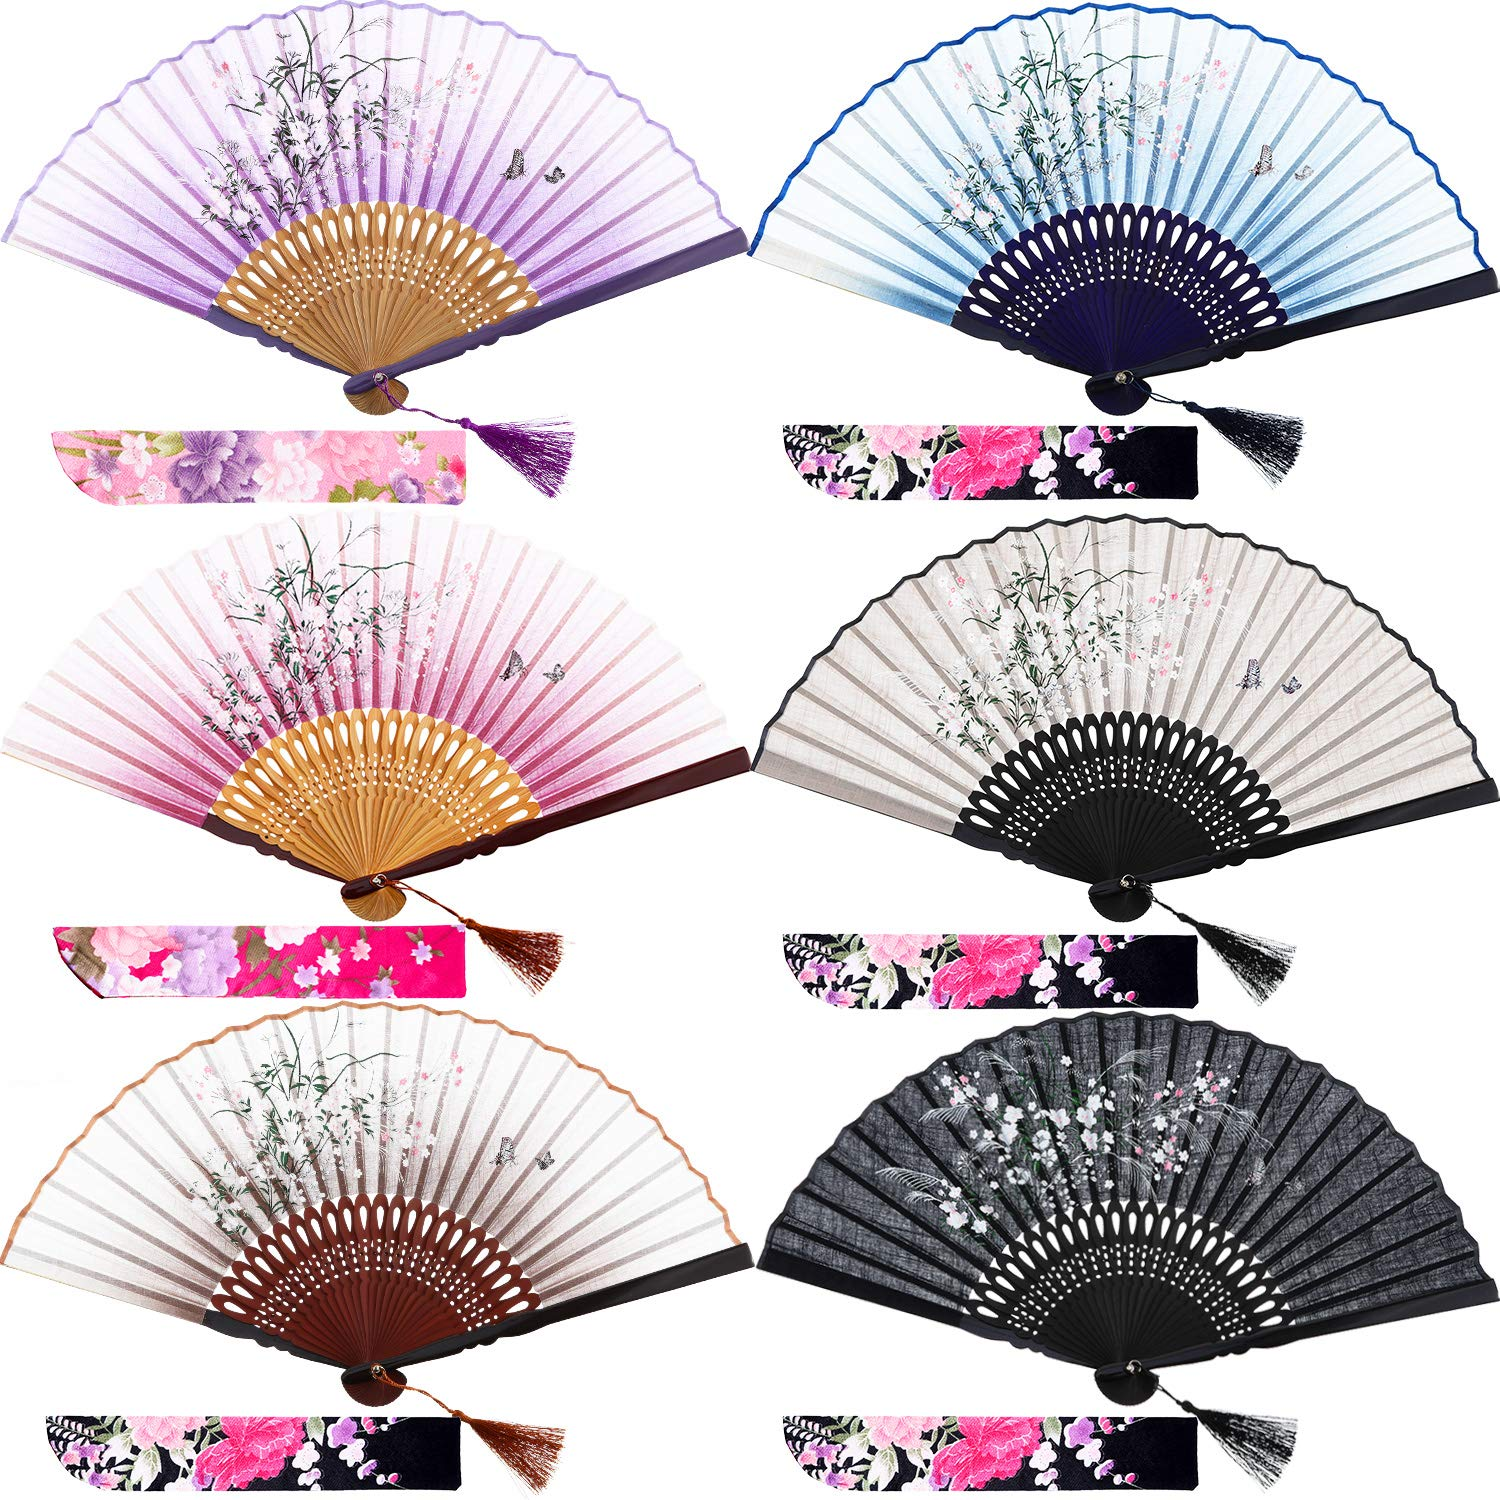 meekoo 6 Pieces Silk Folding Fans Bamboo Hand Held Grassflowers Chinese/Japanese Fan with 6 Fabric Sleeves for Protection, Gift for Women and Girls (Multicolor, 6 Pieces)